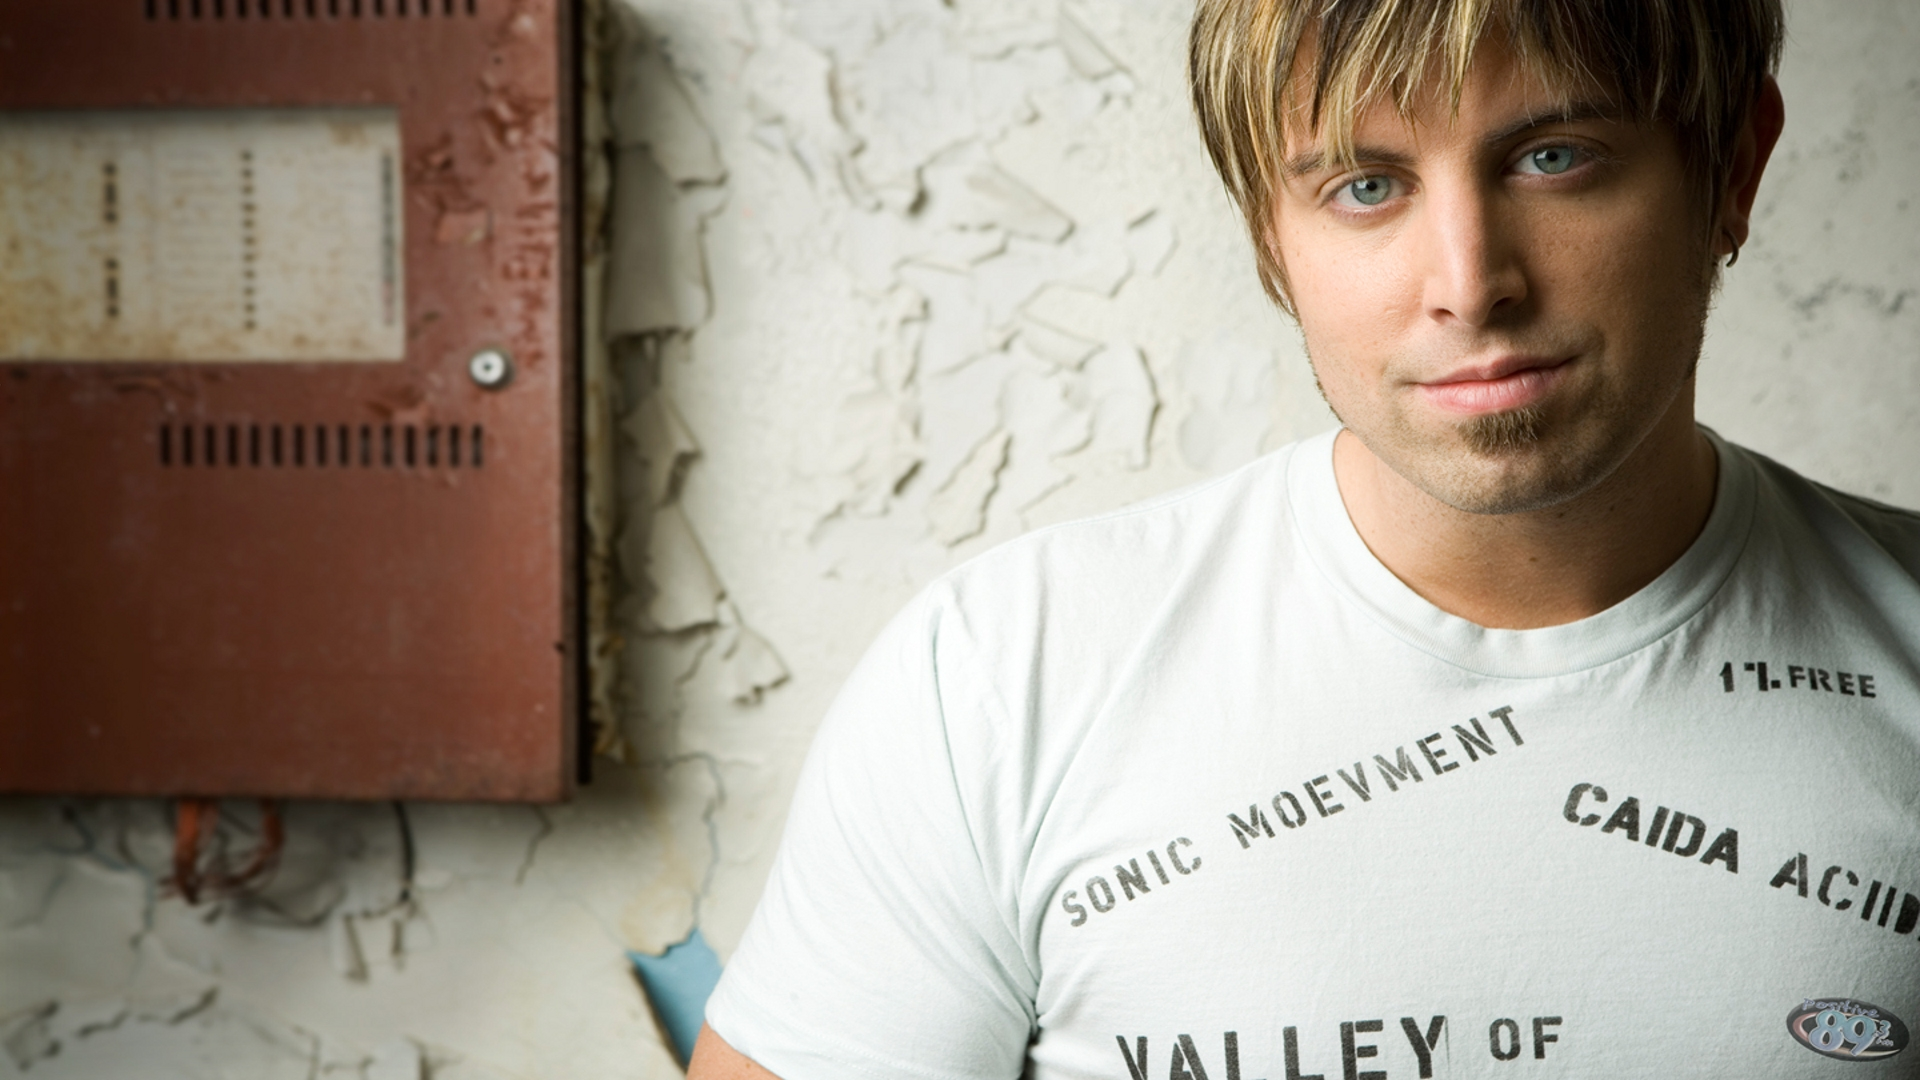 Download Wallpaper 1920x1080 Jeremy Camp, T-shirt, Look